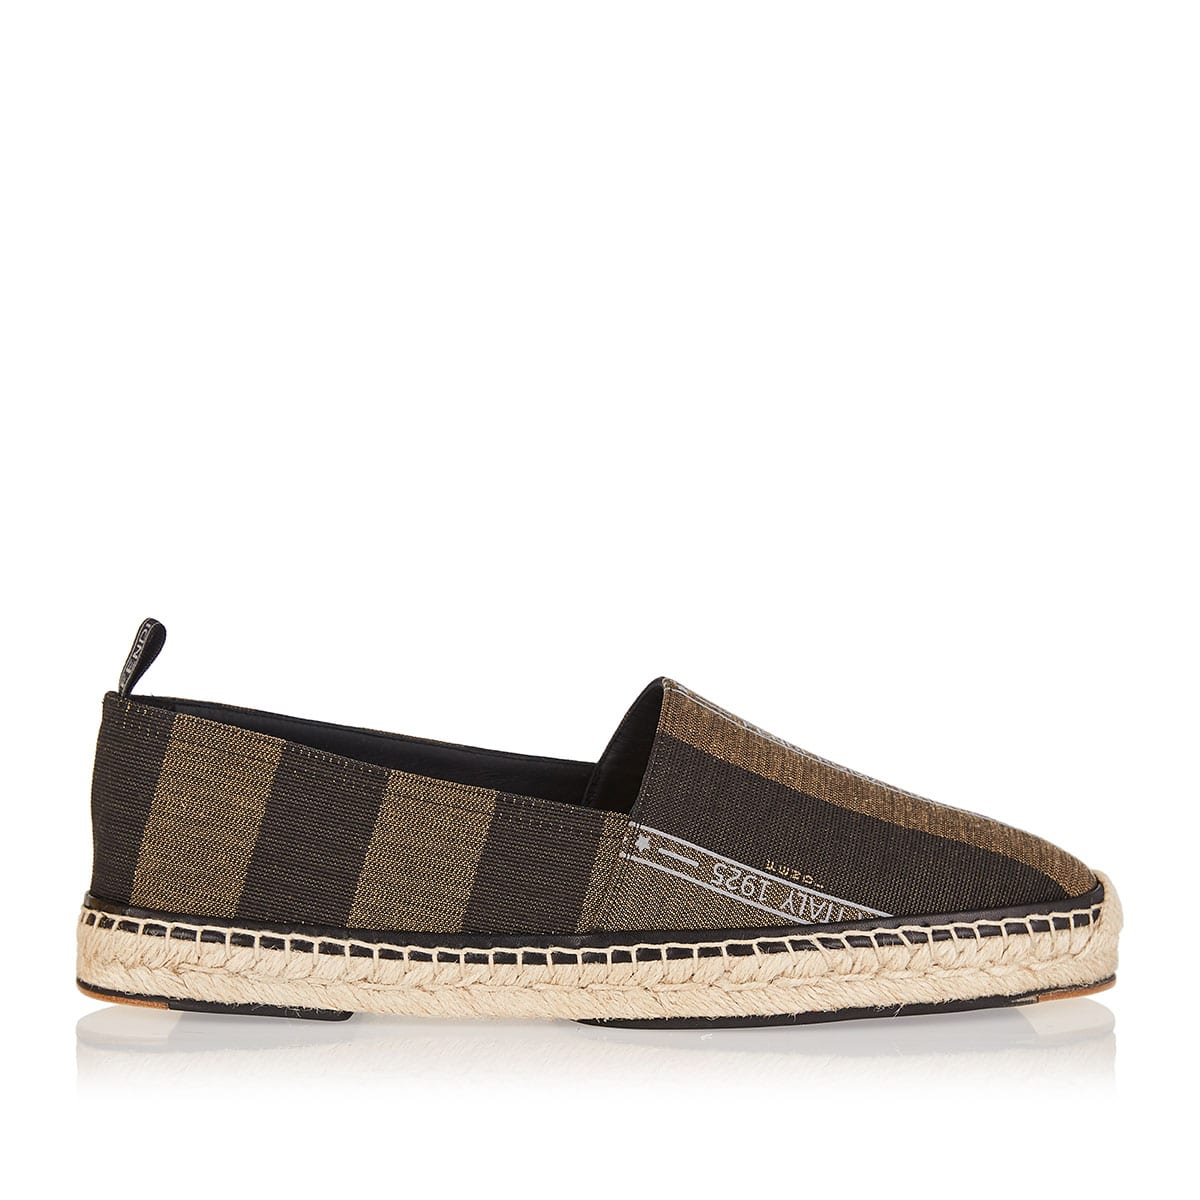 Striped canvas espadrilles